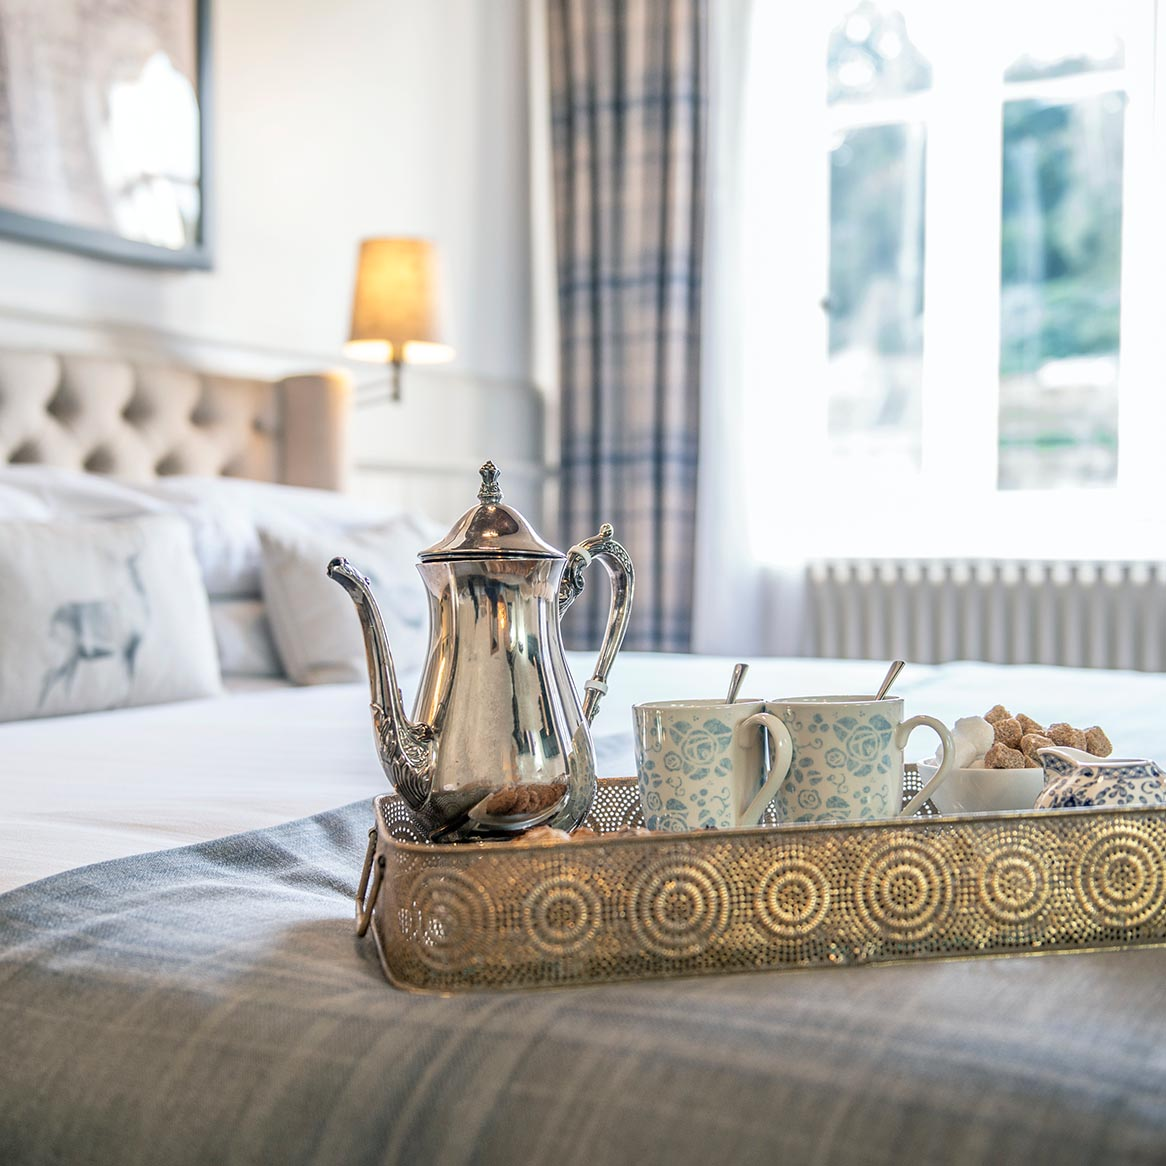 The Jasmine Suite with tea tray